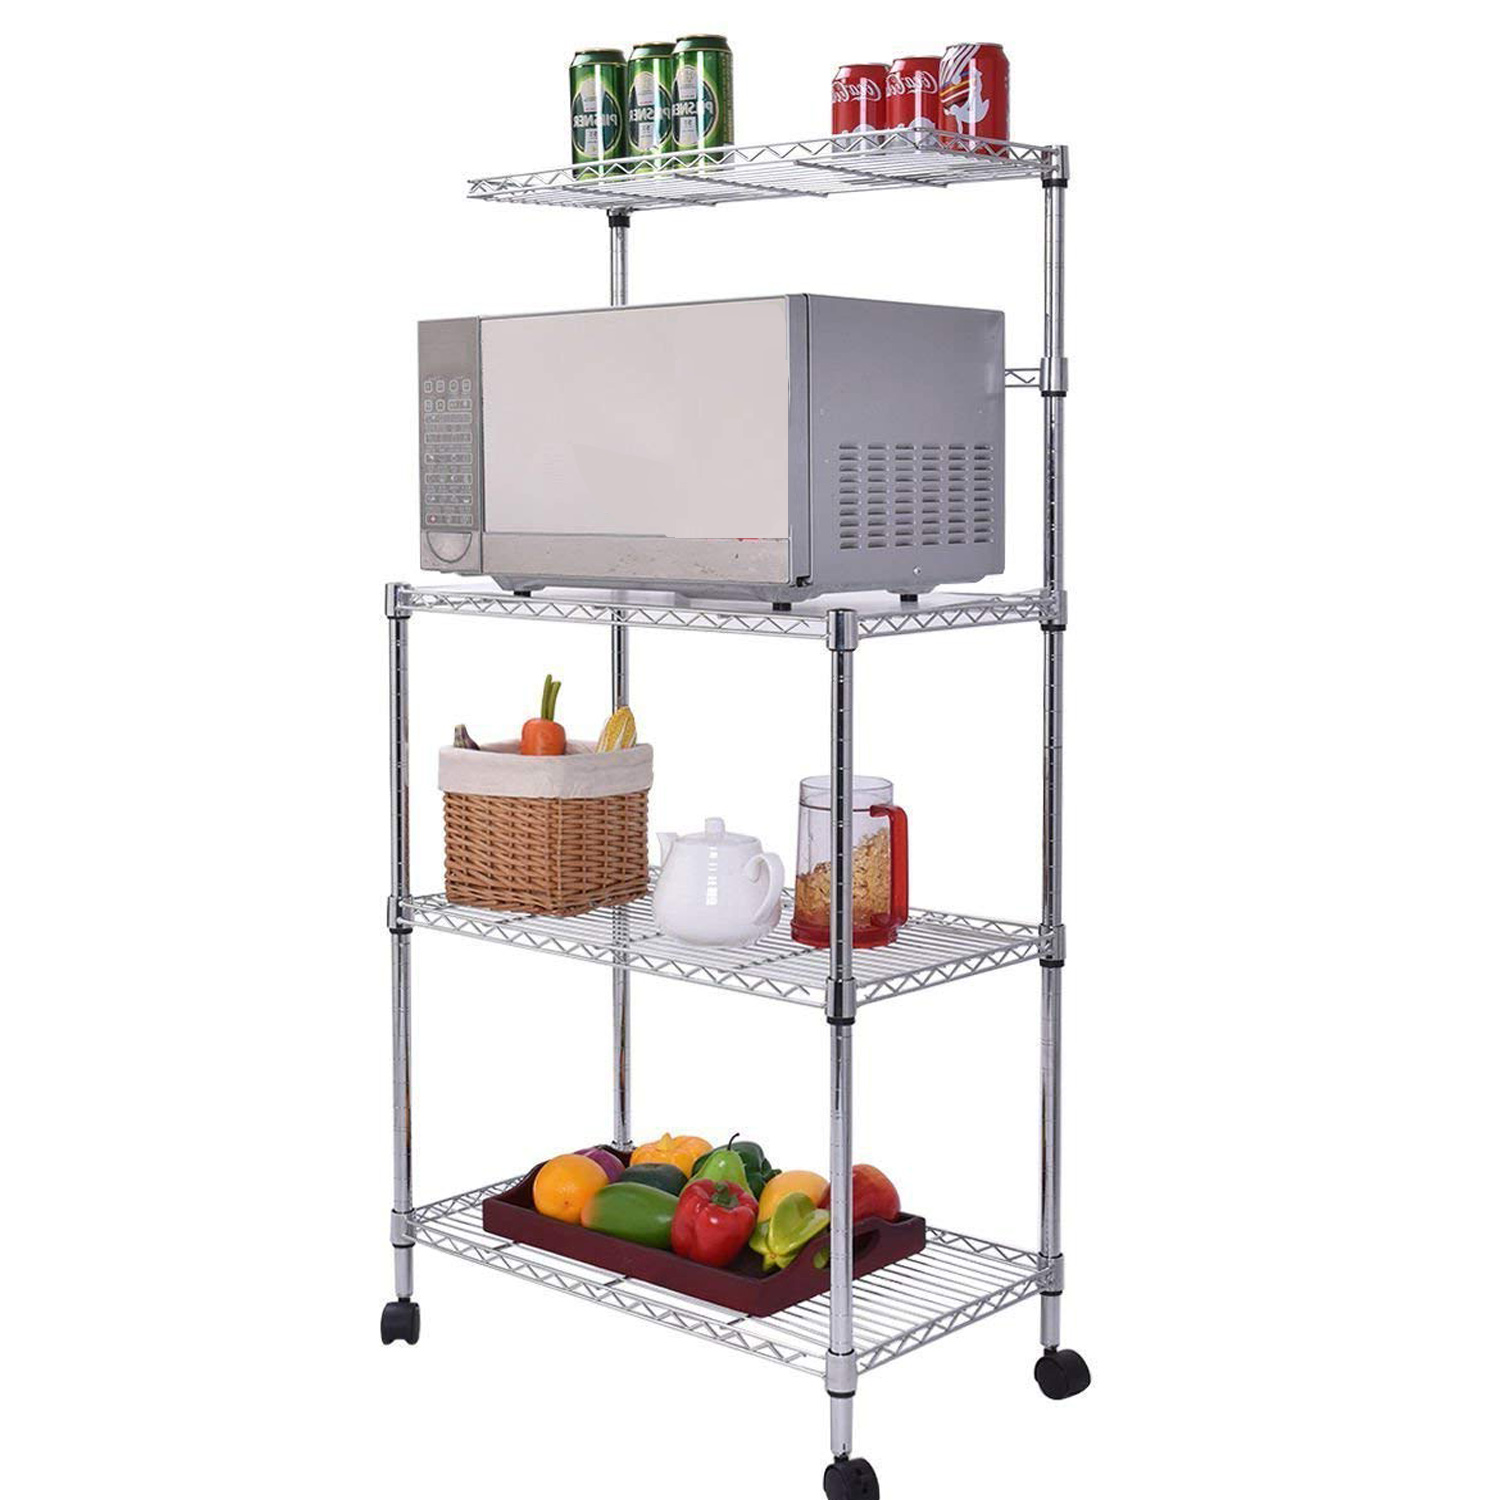 Zlolia Kitchen Baker/'s Rack Microwave Stand with Basket for Spice Rack Organizer Utility Shelf Cart Workstation Oven Stand Space Saving Bakers Stand Large Kitchen Island Organizer